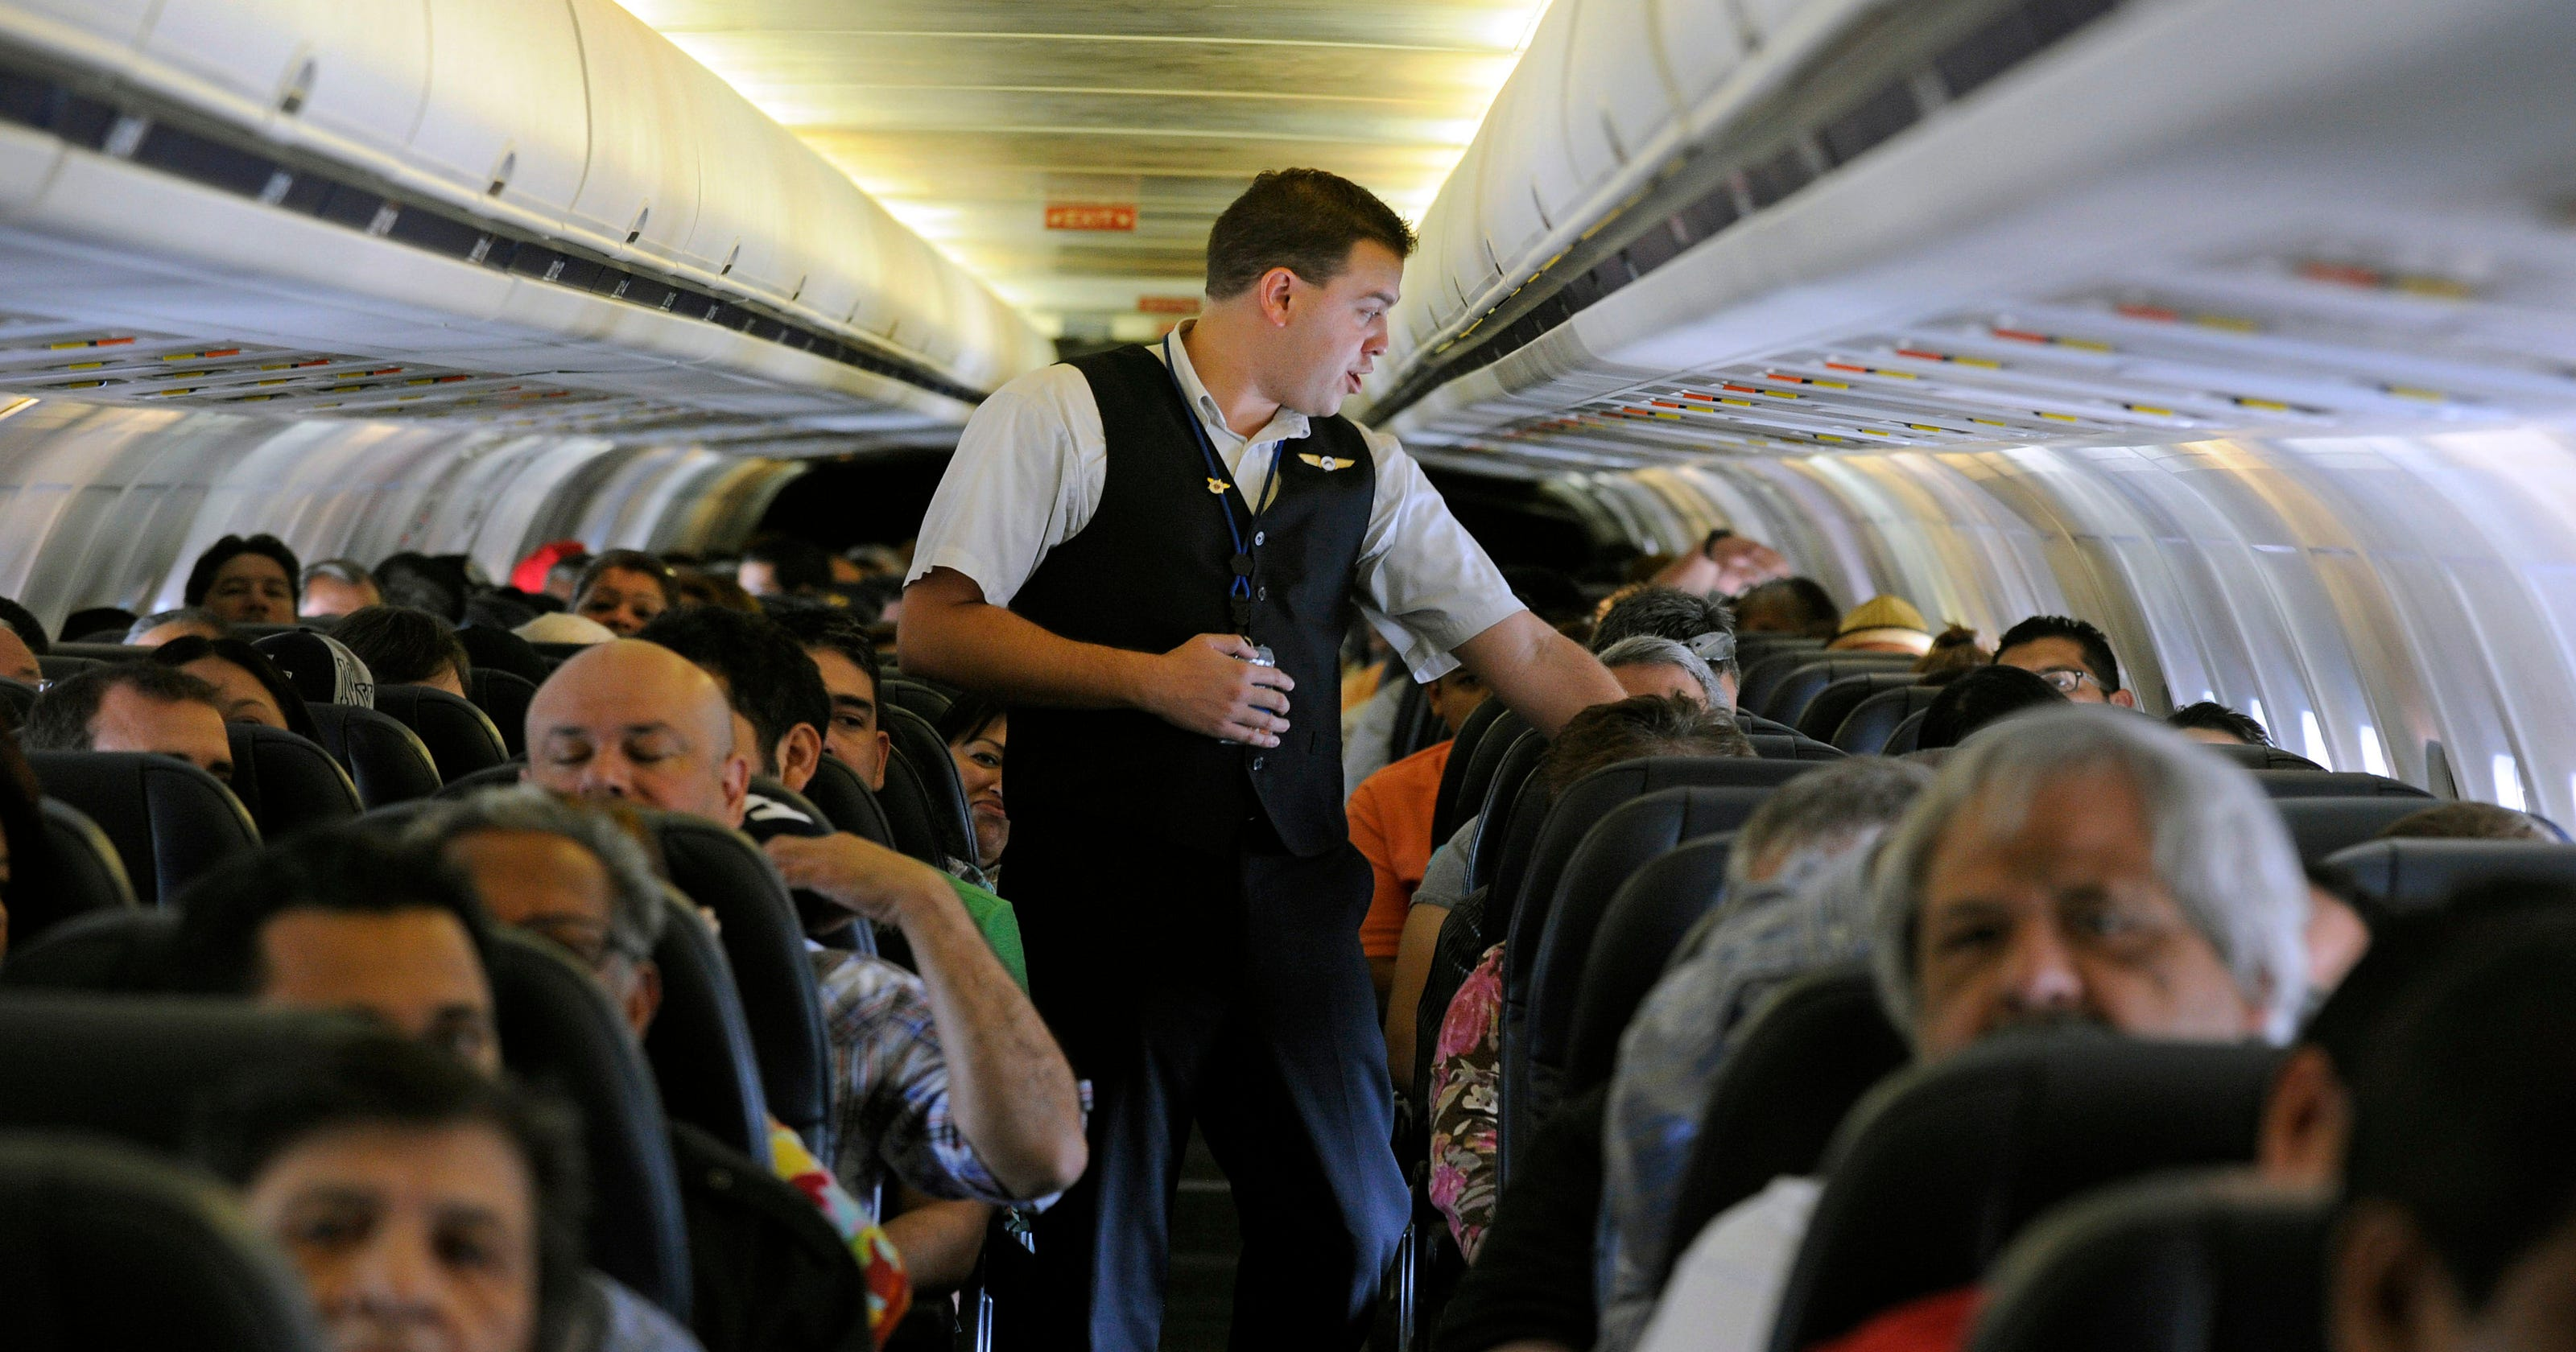 What if flight attendants could reward passengers for good